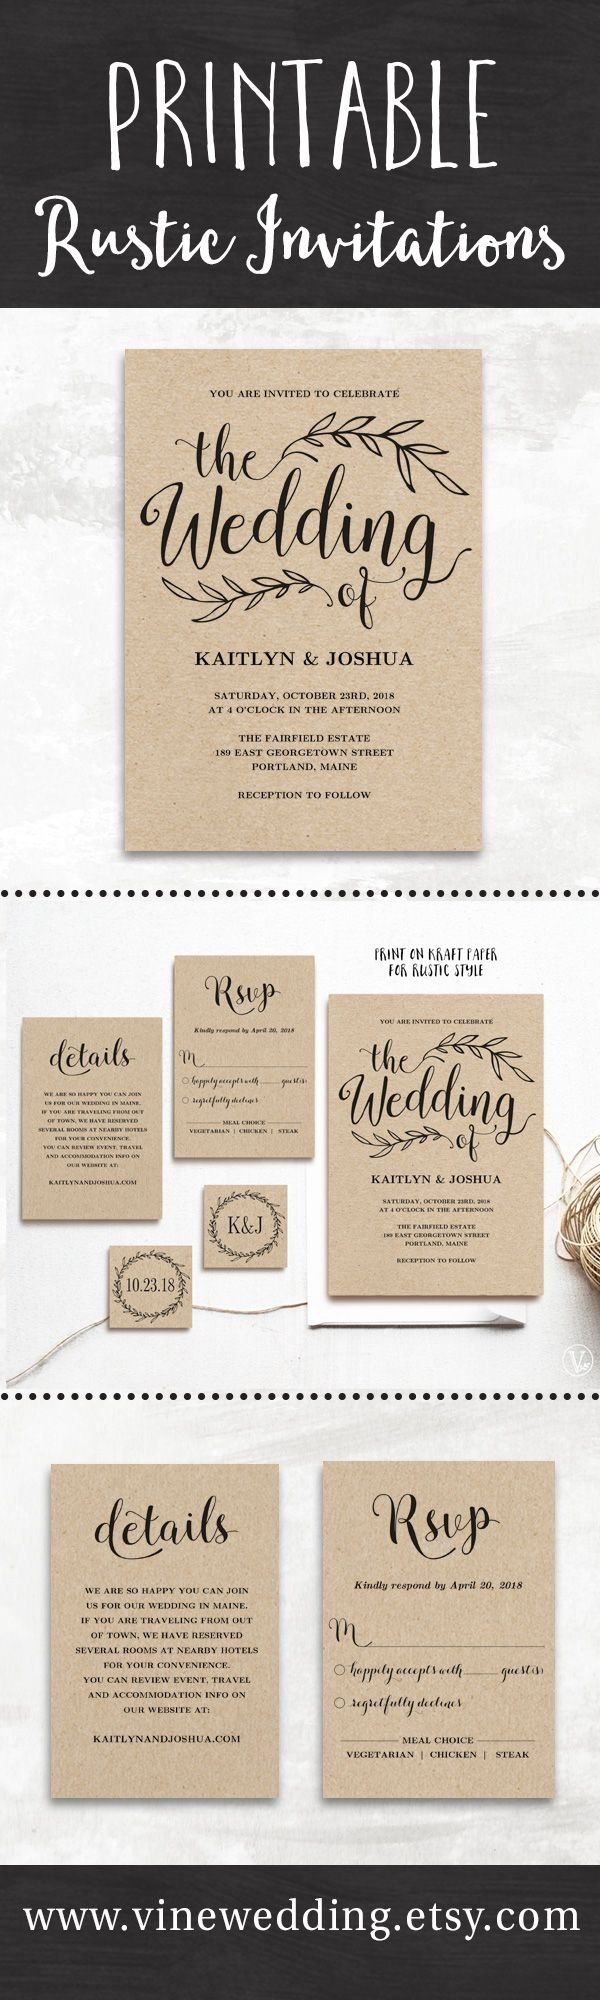 wedding invitation sample by email%0A Beautiful rustic wedding invitations  Editable instant download templates  you can print as many as you